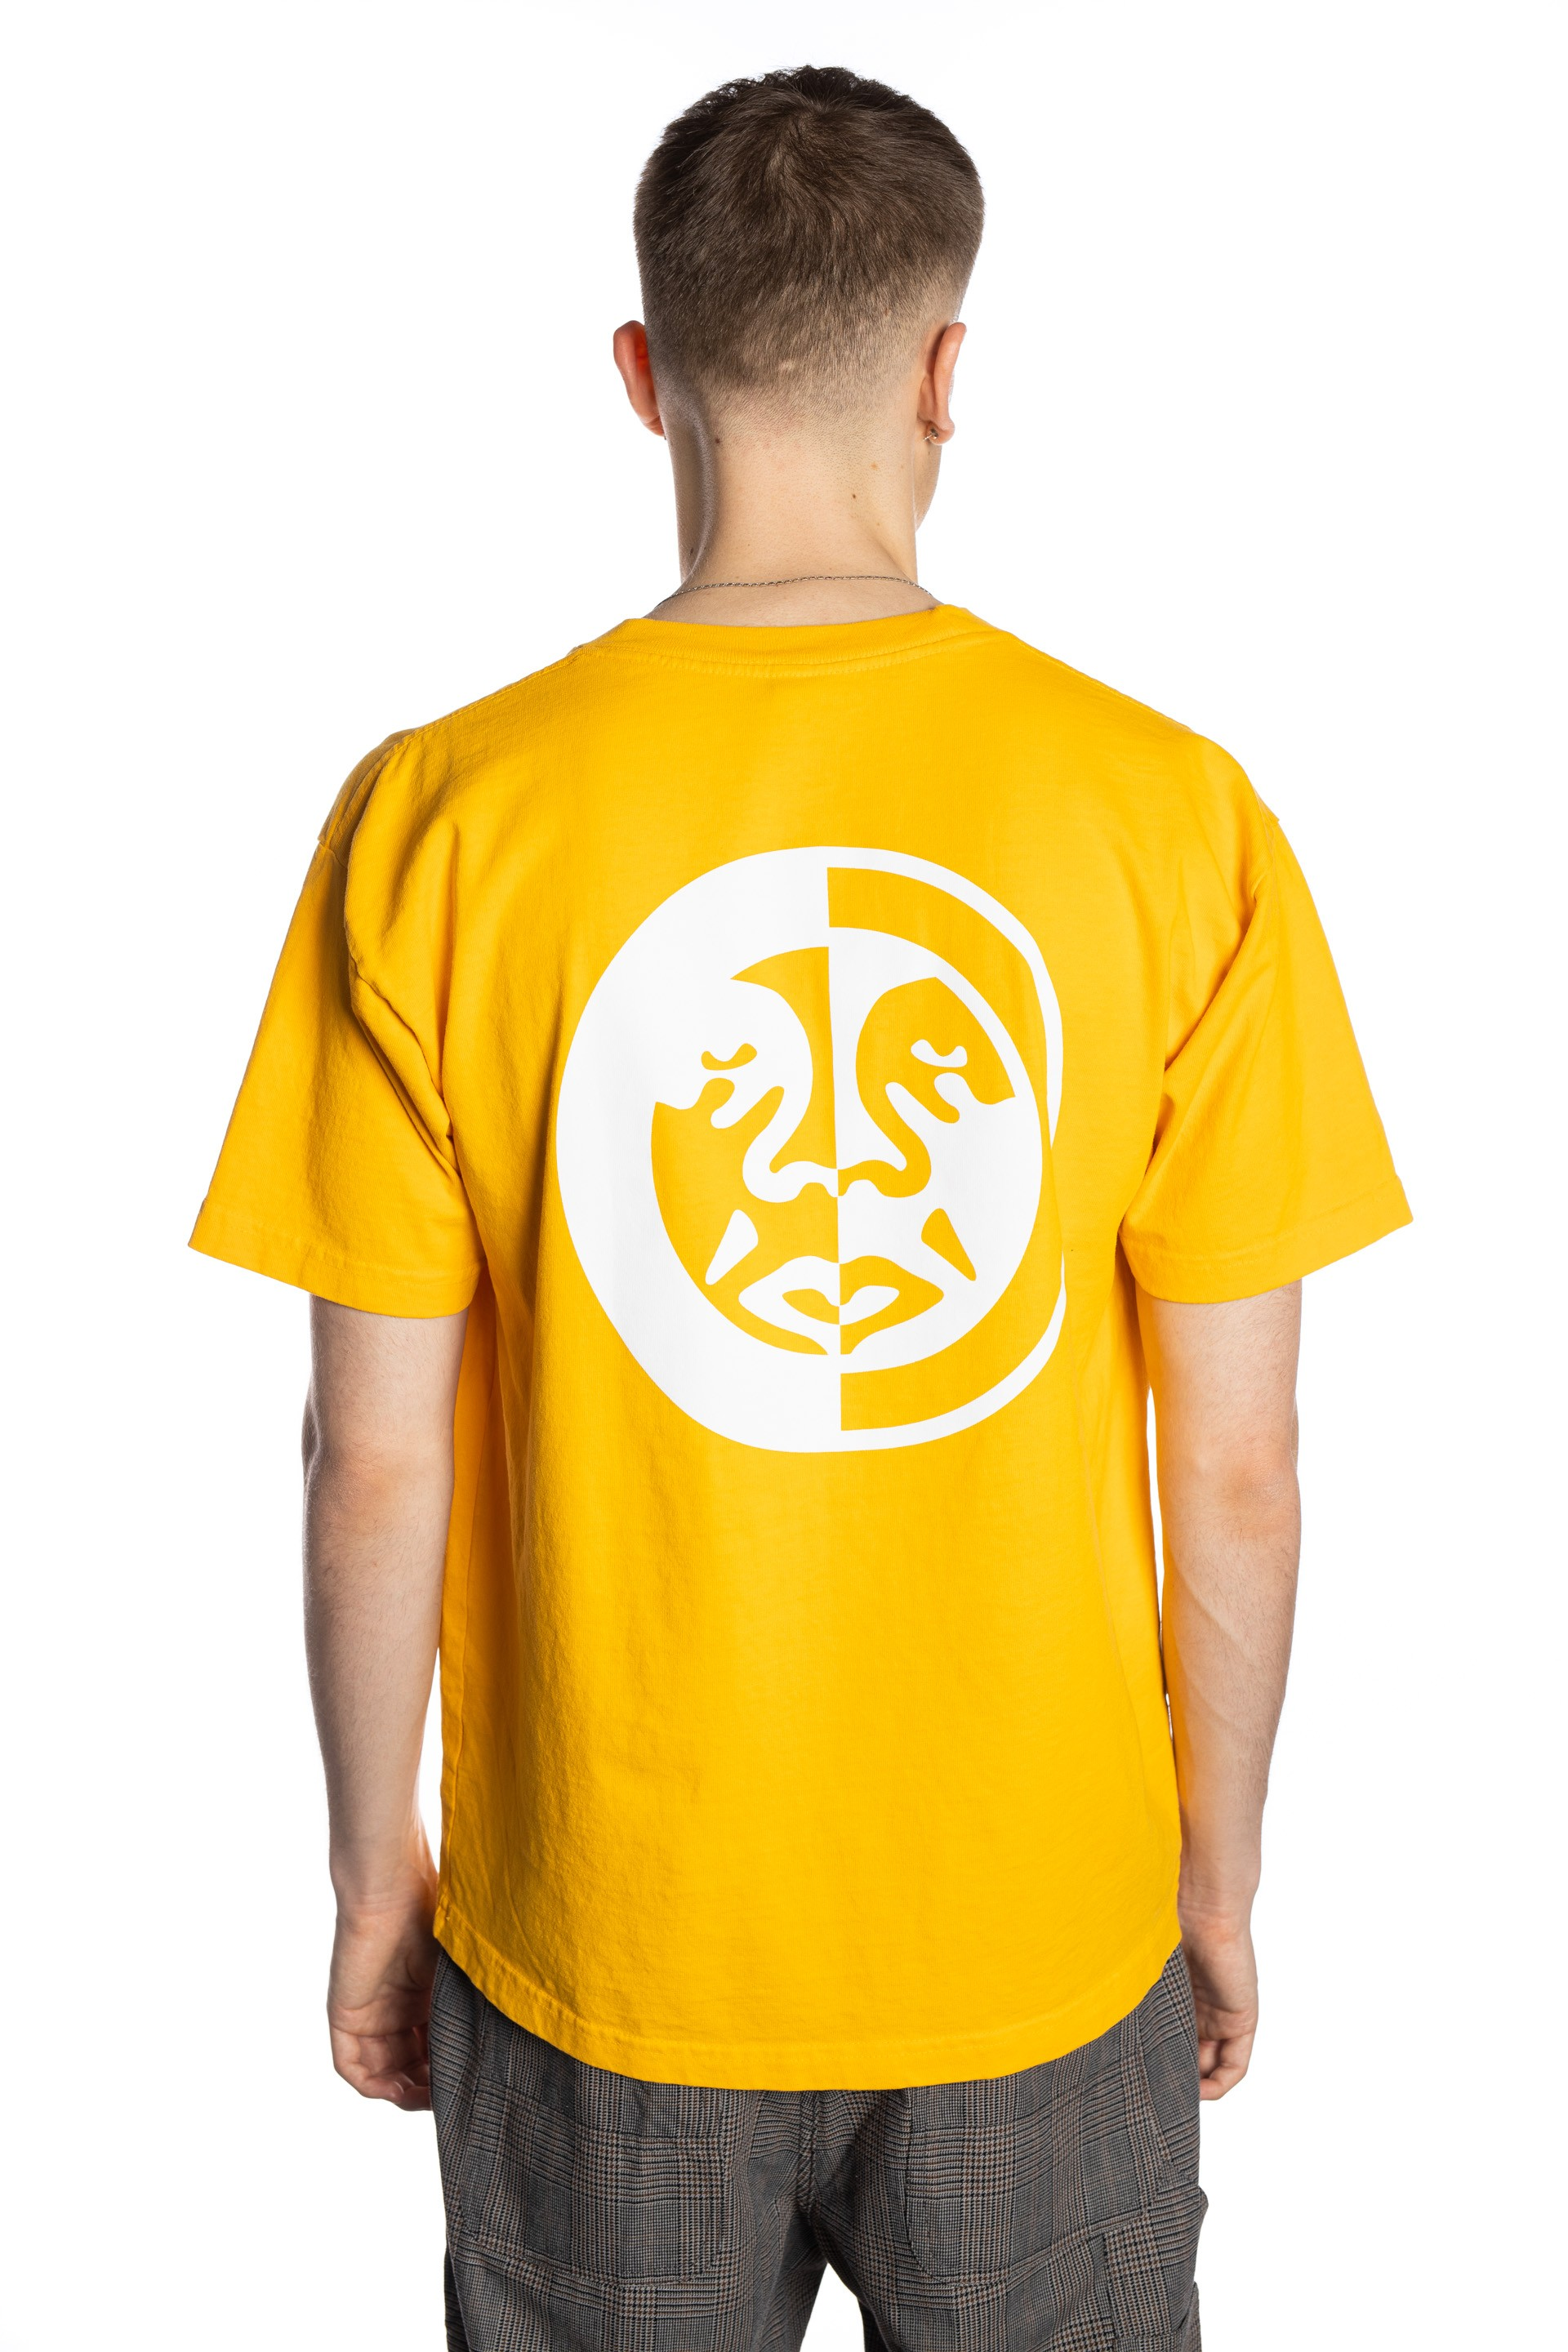 Obey-Obey-Split-Icon-Tee-Gold-X21-webshop-34.jpg